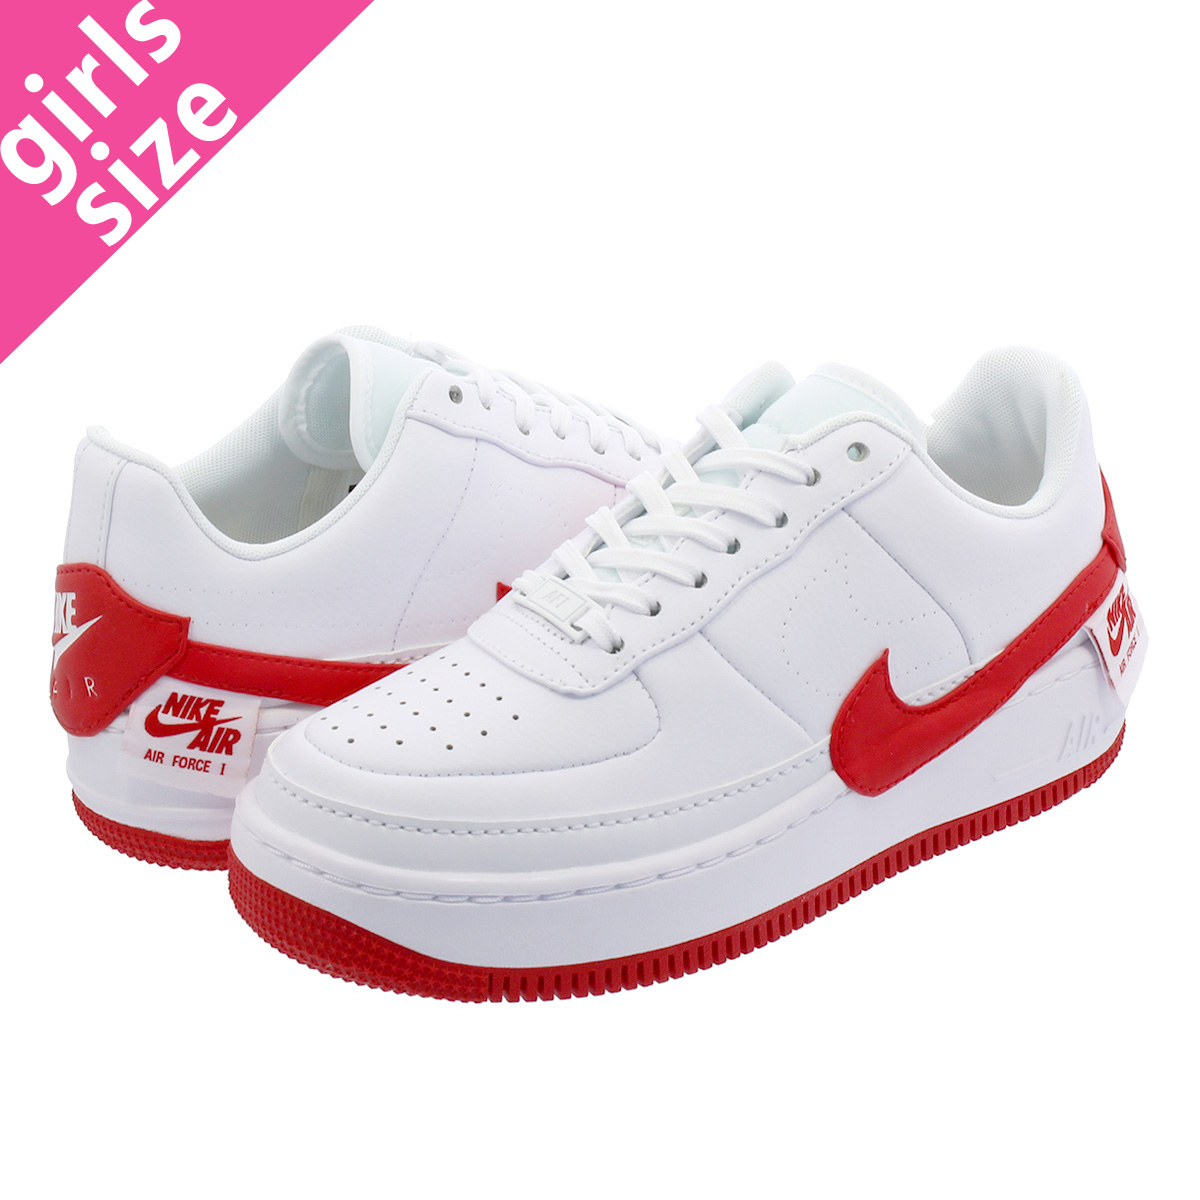 NIKE WMNS AIR FORCE 1 JESTER XX Nike women air force 1 Jester XX WHITEUNIVERSITY RED ao1220 106